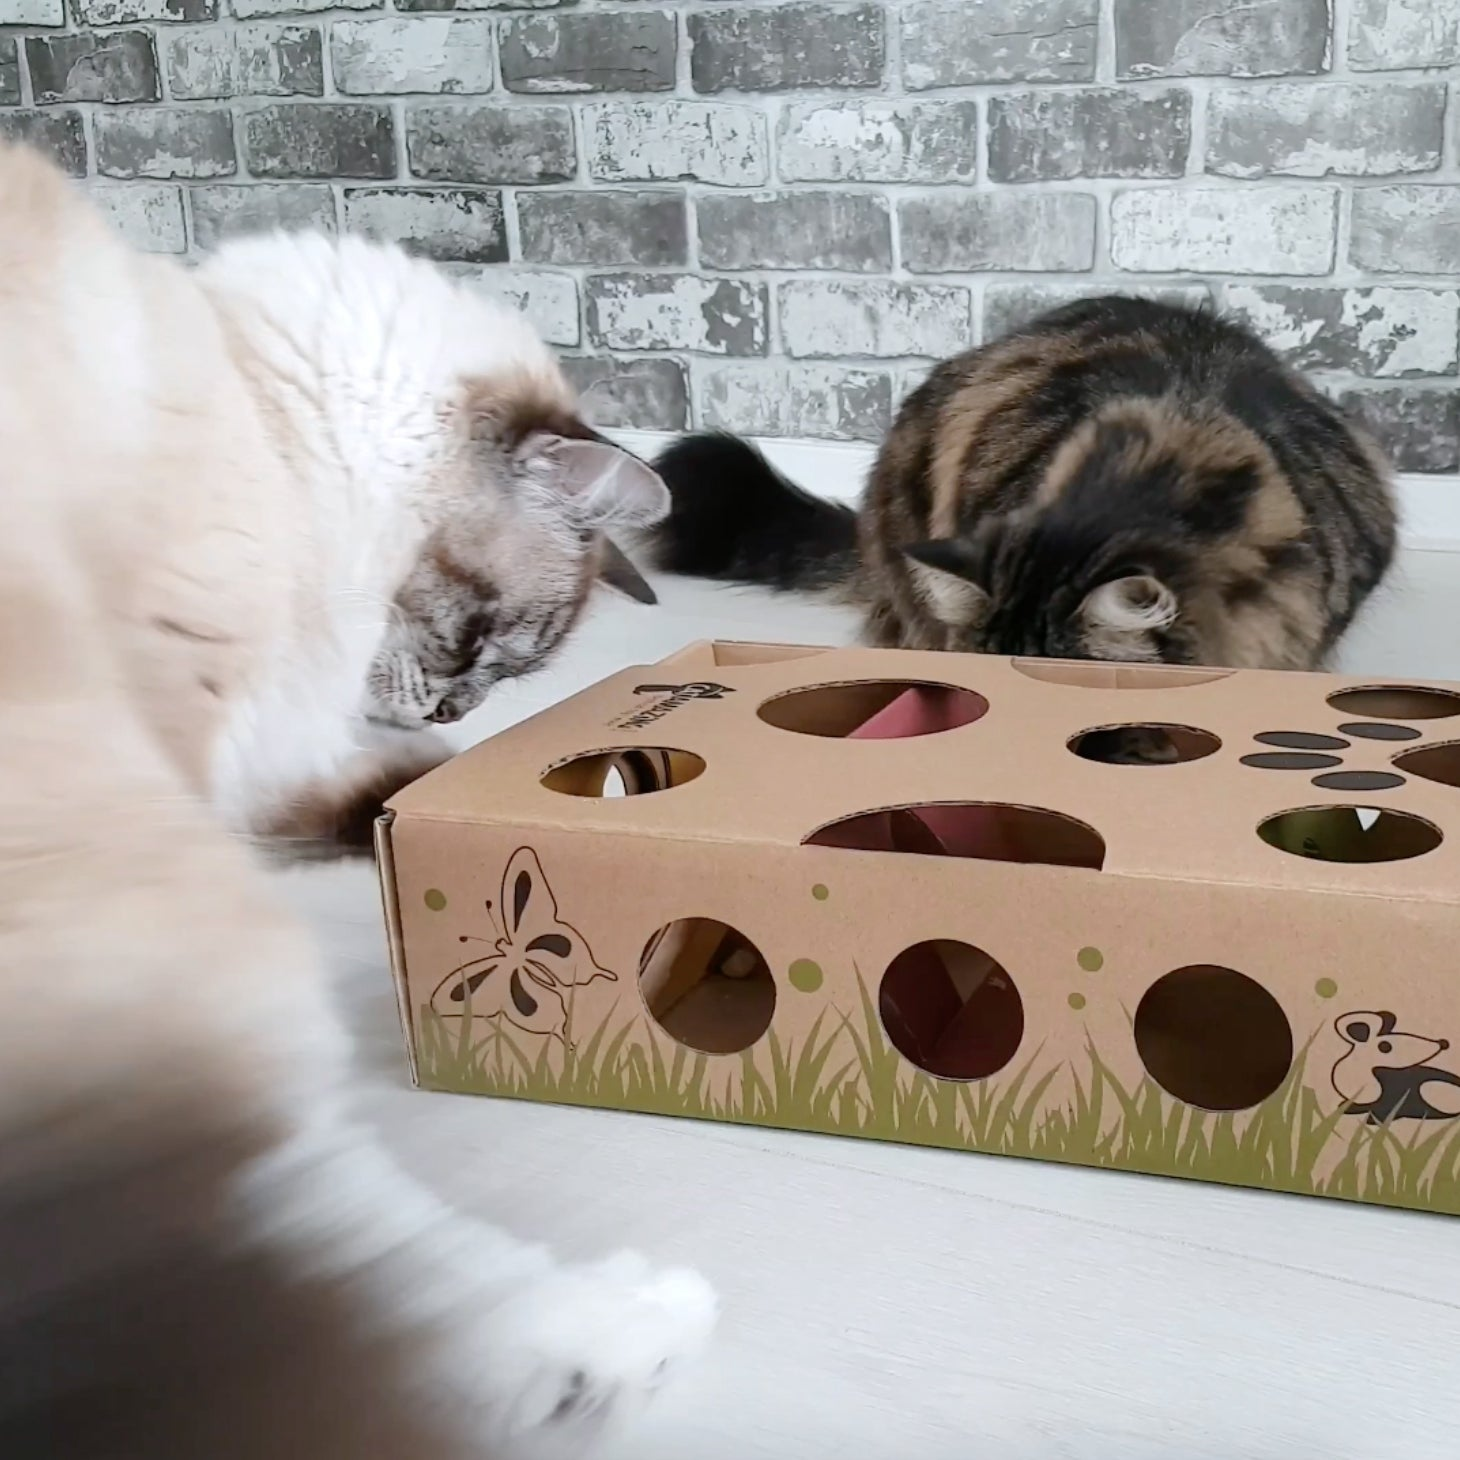 Amazing Cat: Best Interactive Toy For Cats & Kittens